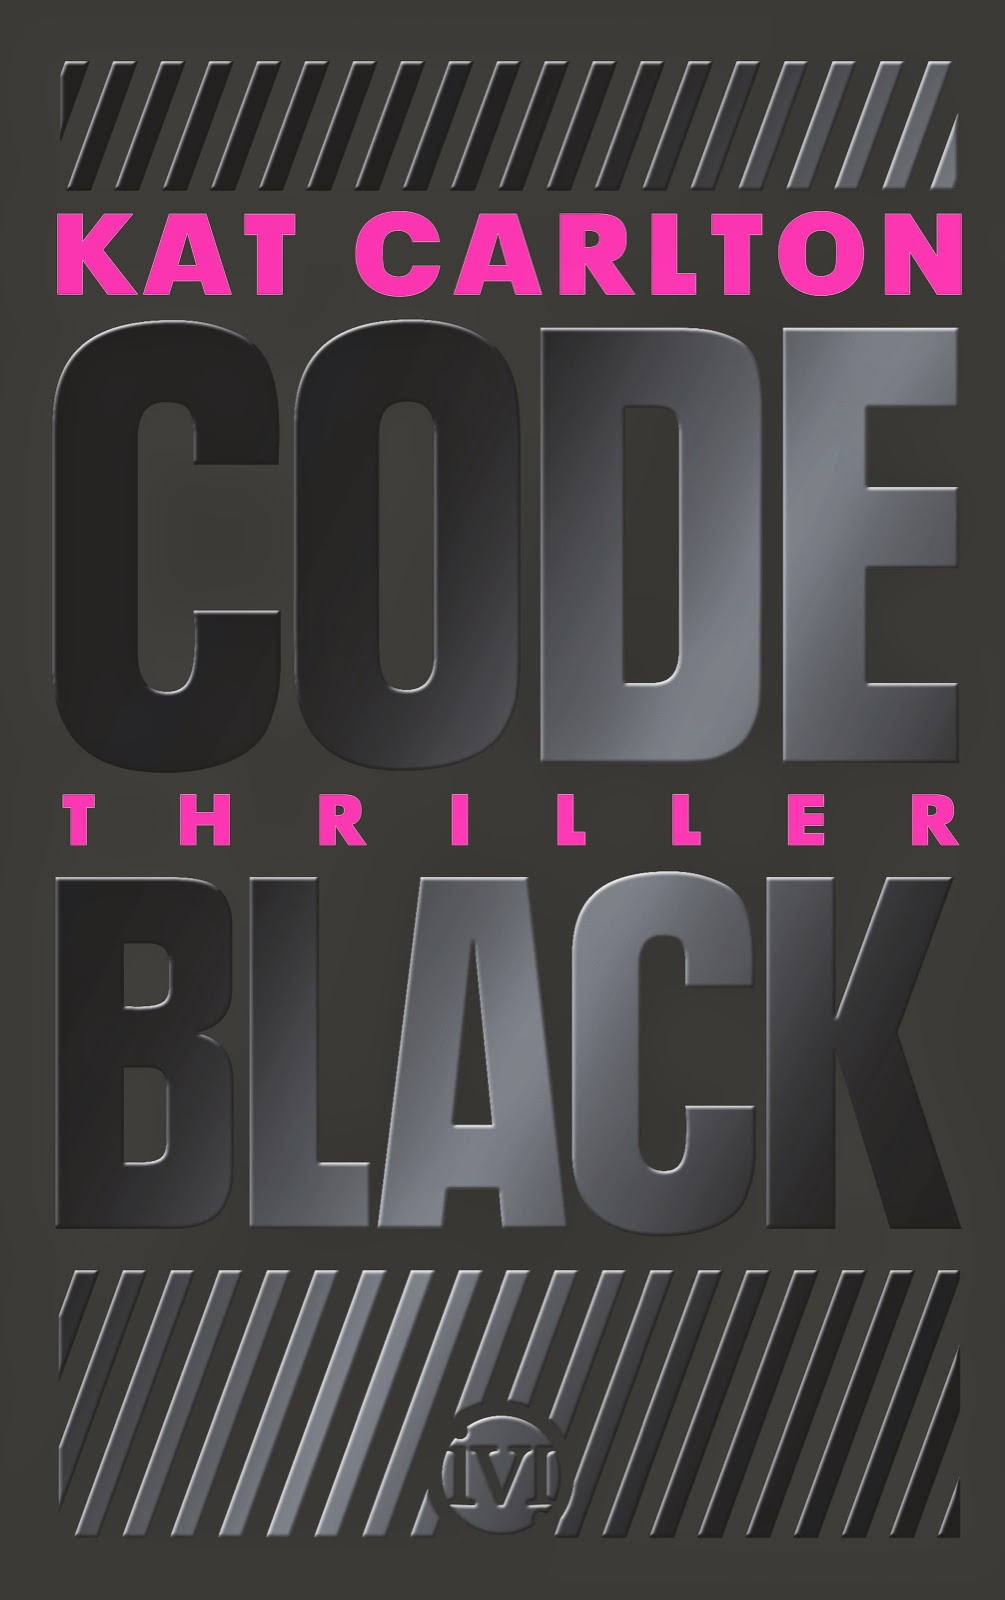 http://www.amazon.de/Code-Black-Thriller-Kat-Carlton/dp/349270316X/ref=sr_1_1_twi_2?ie=UTF8&qid=1421507547&sr=8-1&keywords=code+black